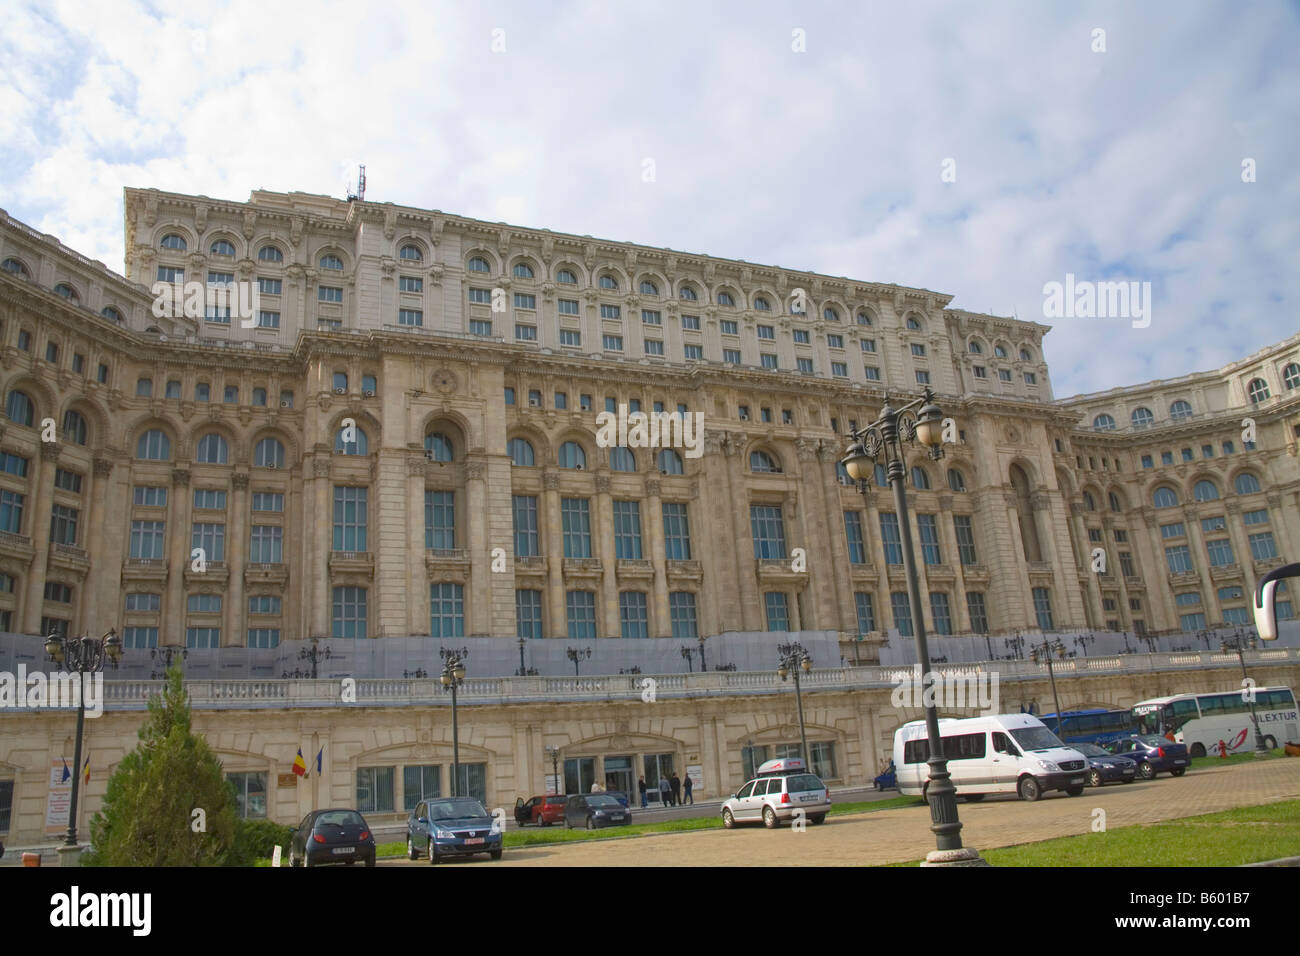 Bucharest Romania Europe The Casa Poporului House of the People started by Nicholae Ceausescu in 1984 most expensive - Stock Image